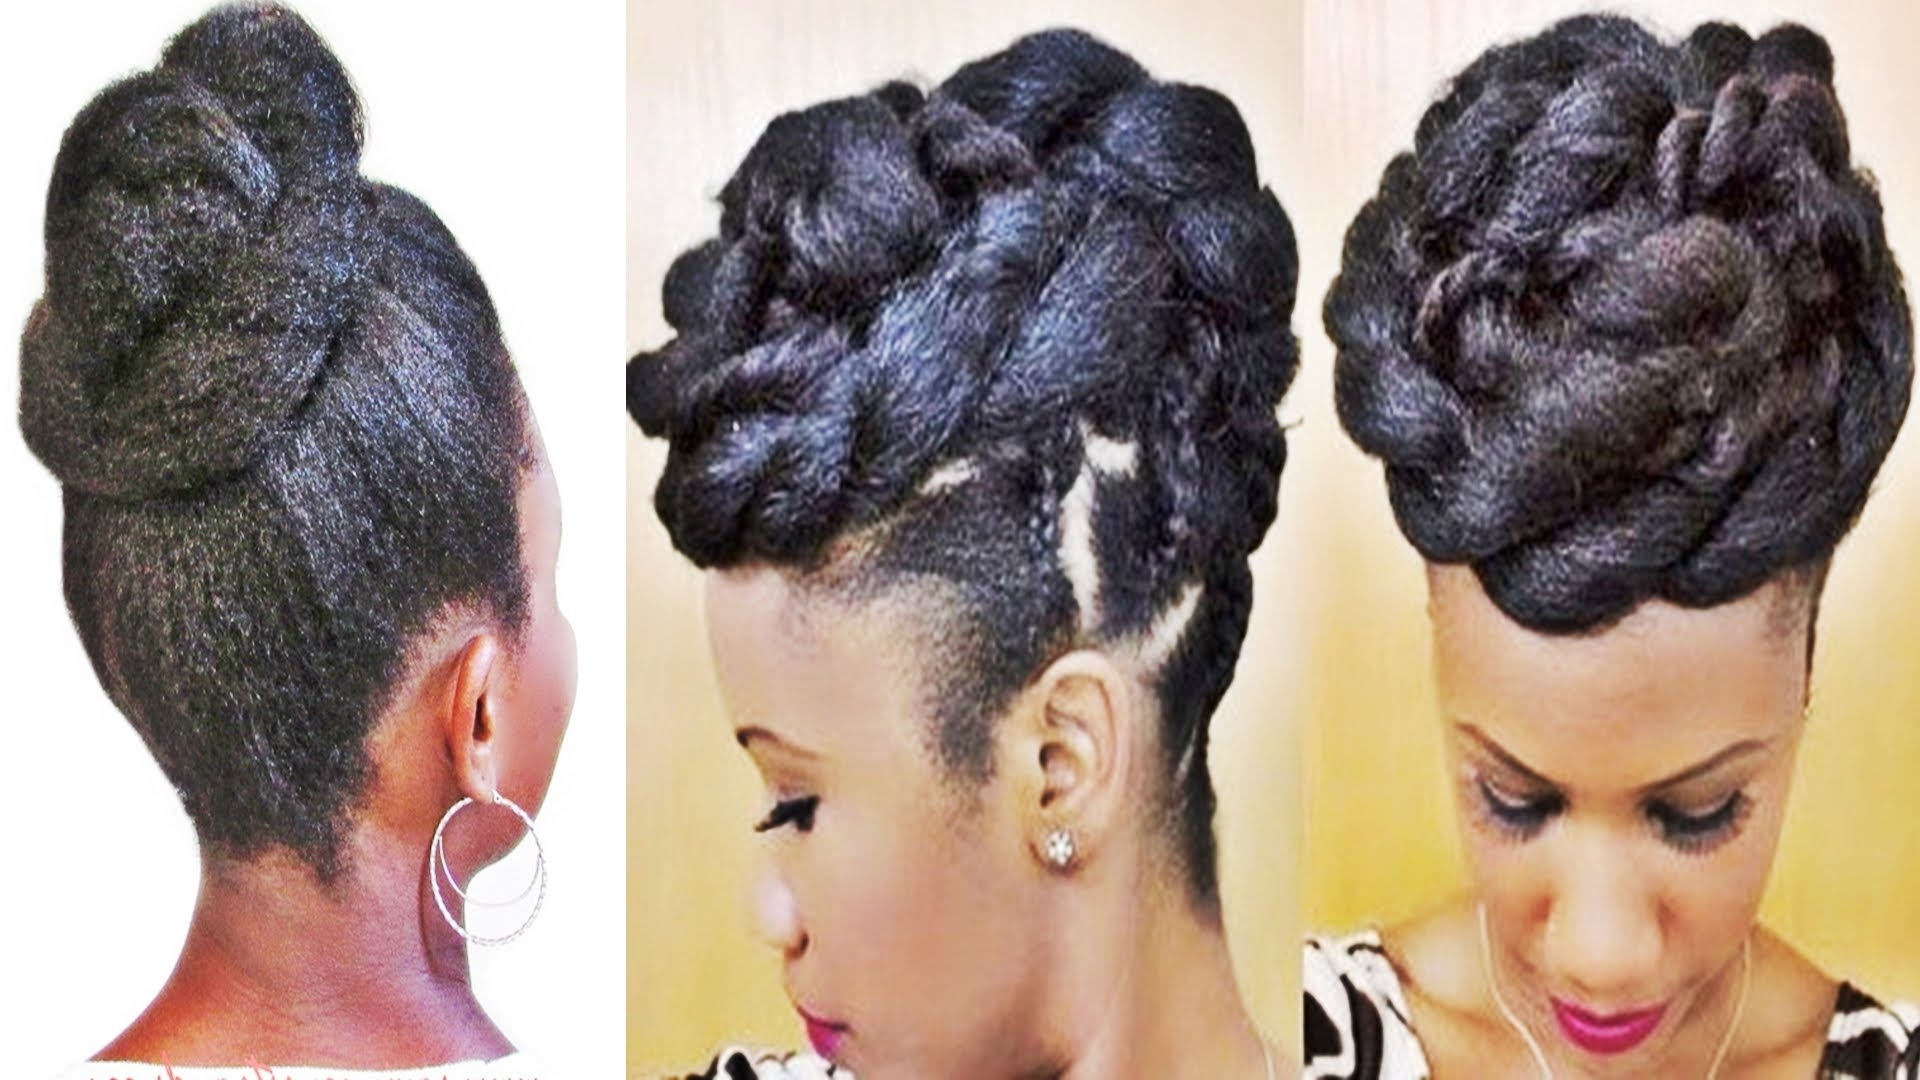 braided updo styles for black hair 15 ideas of black braided bun updo hairstyles 6021 | braids and twists updo hairstyle for black women youtube within black braided bun updo hairstyles